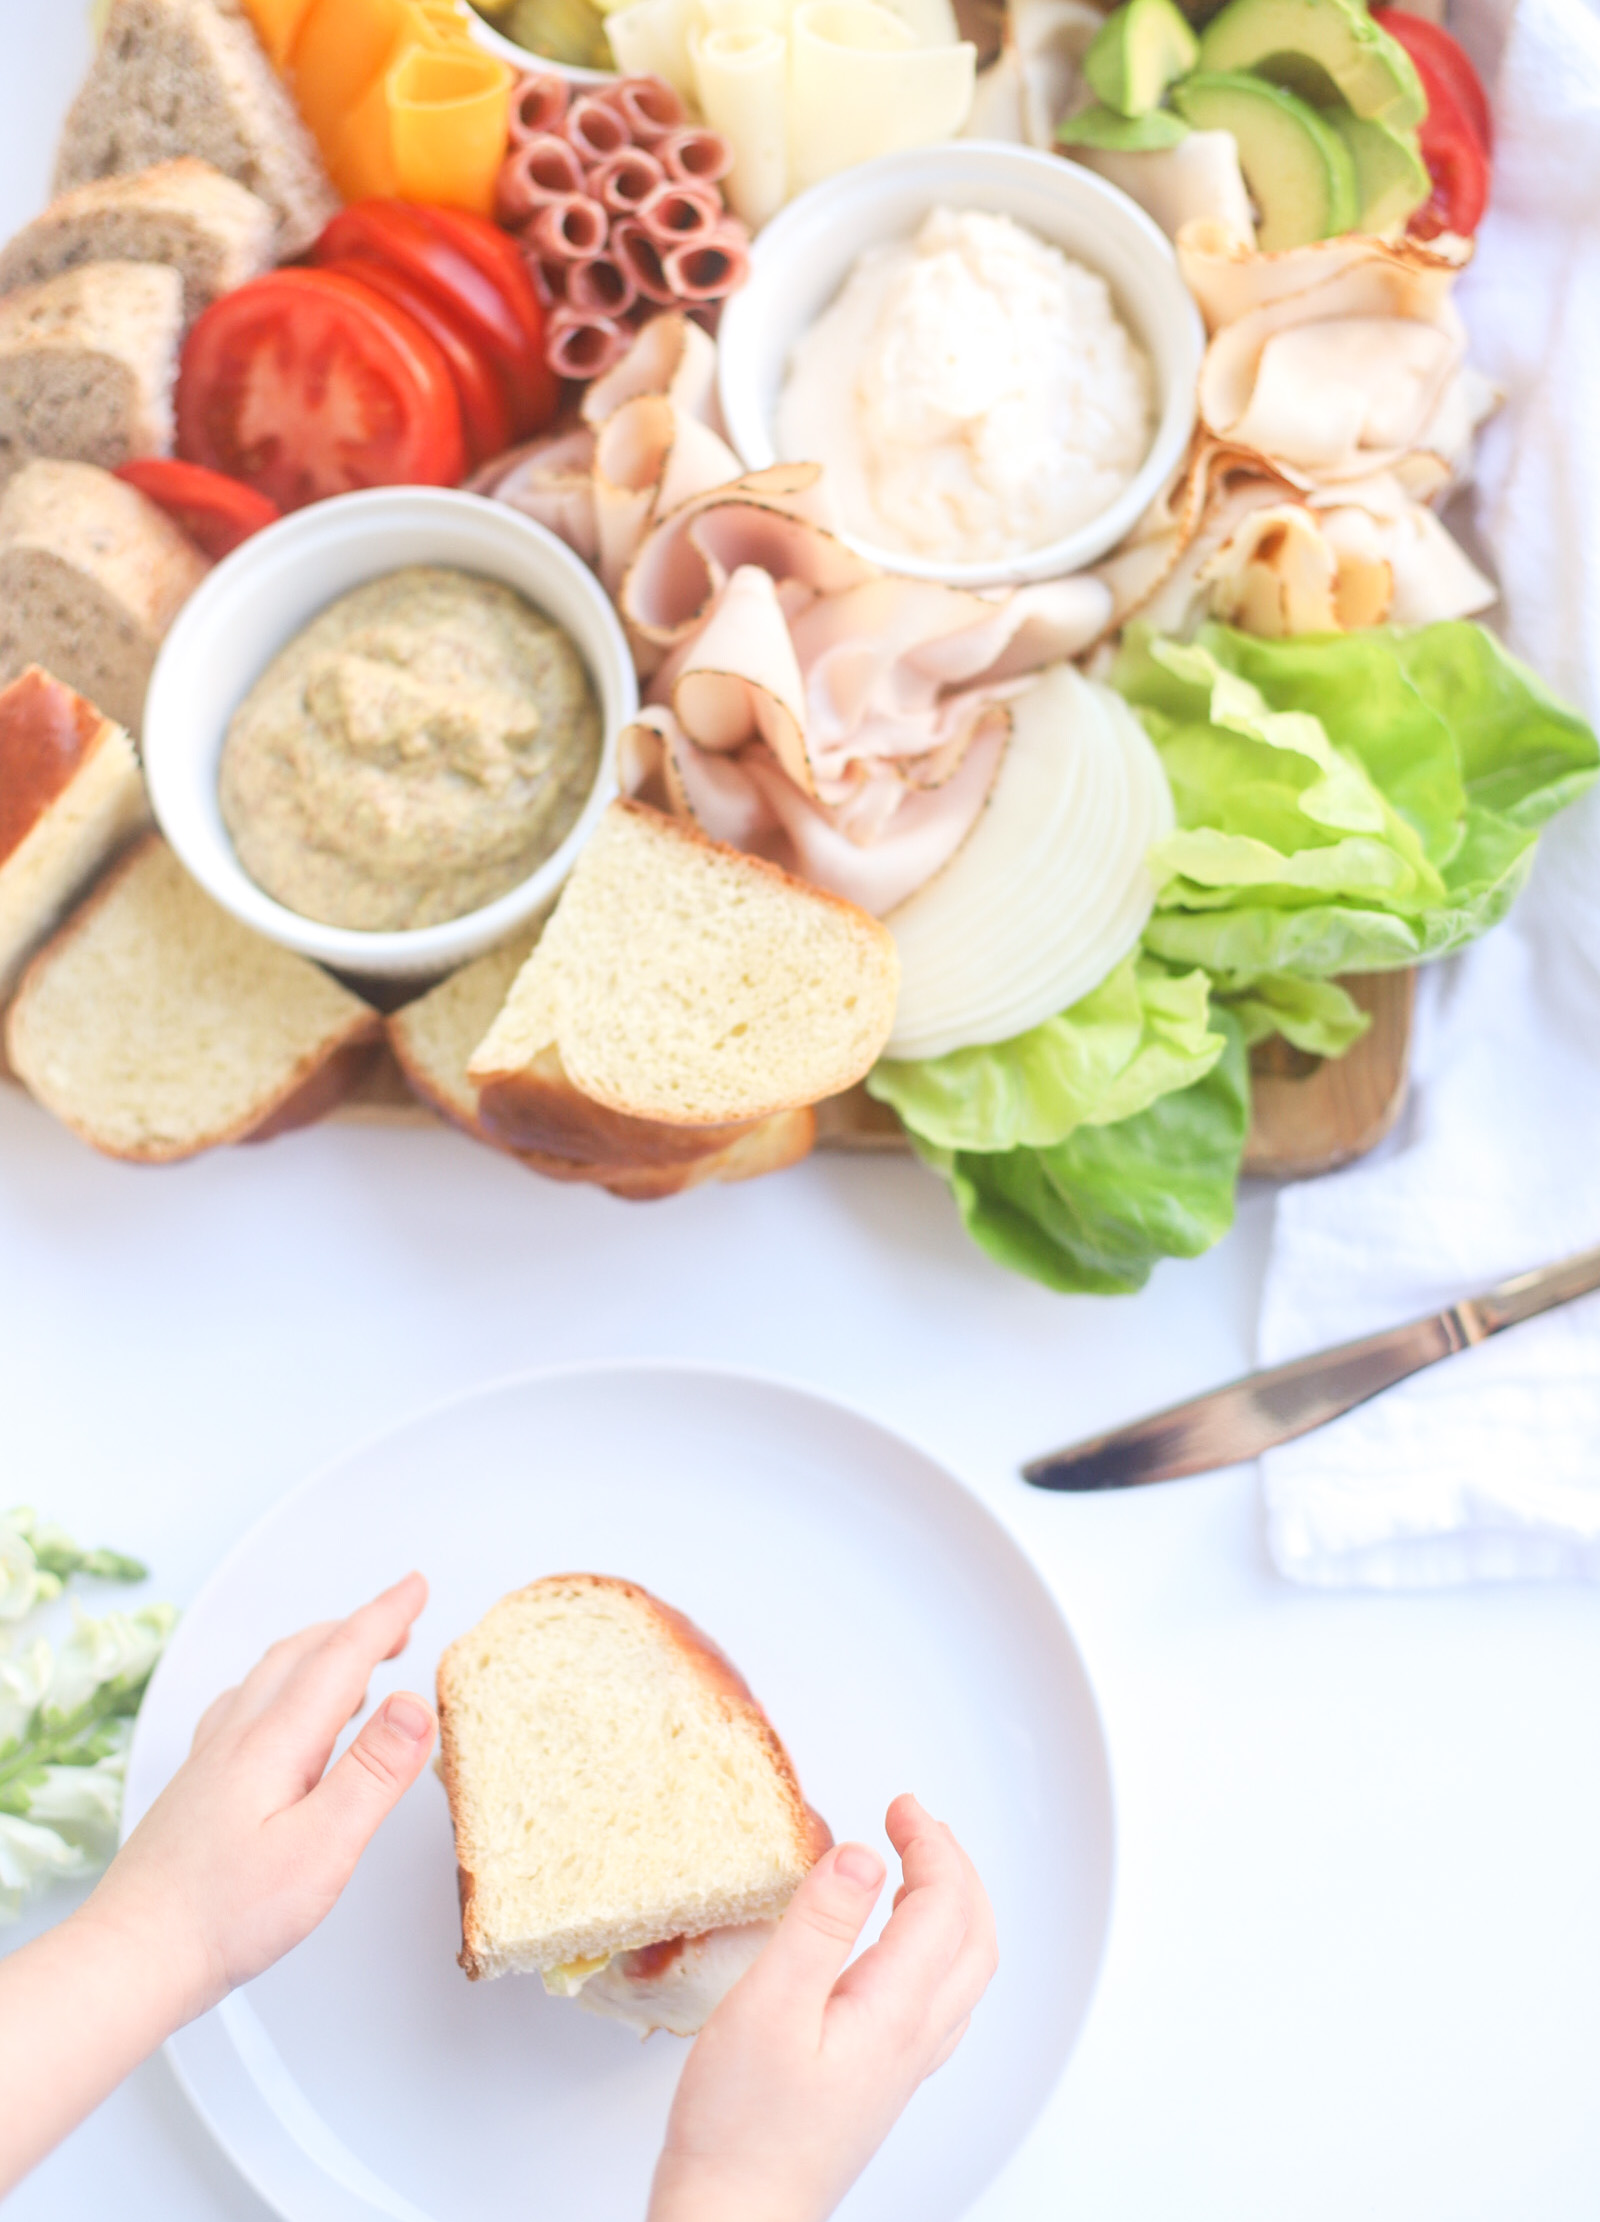 Sandwich Charcuterie Board - Summer Grazing Board - Dinner - Lunch - GLITTERINC.COM - @glitterinclexi